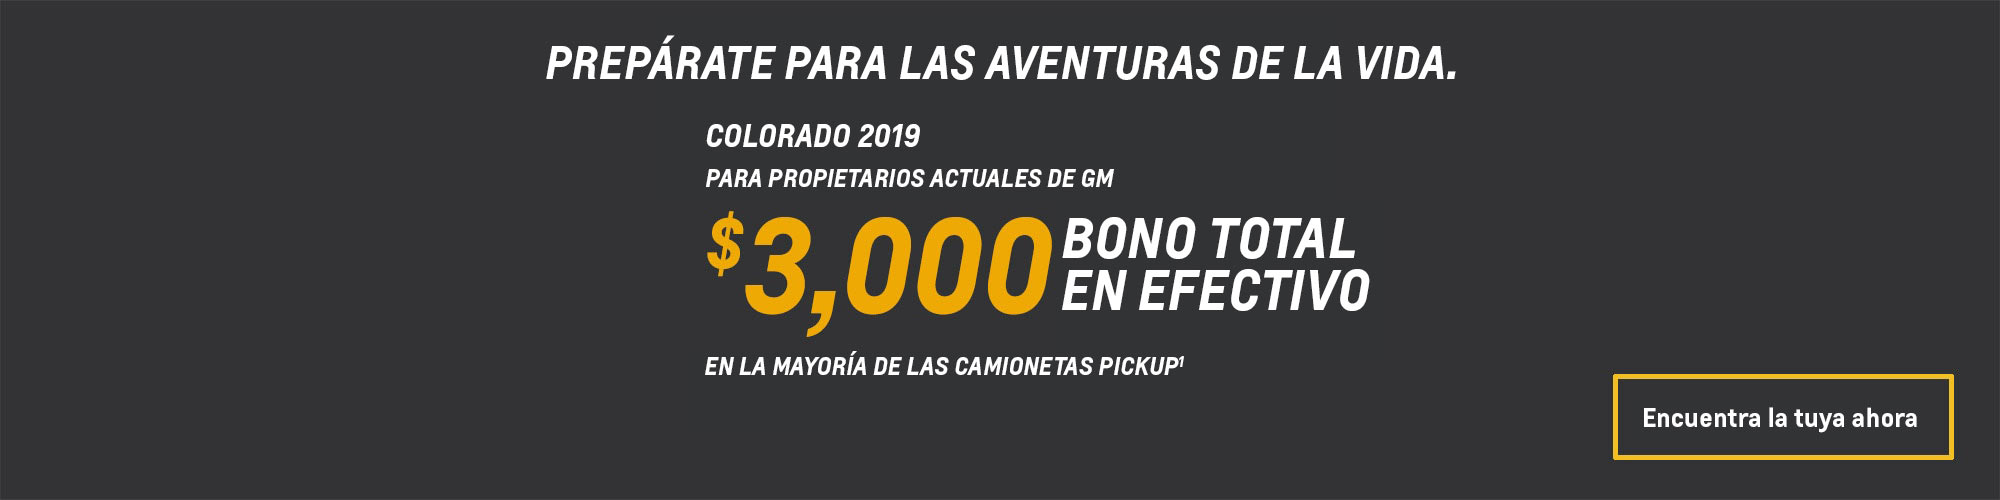 Colorado 2019: $3,000 Bono total en efectivo